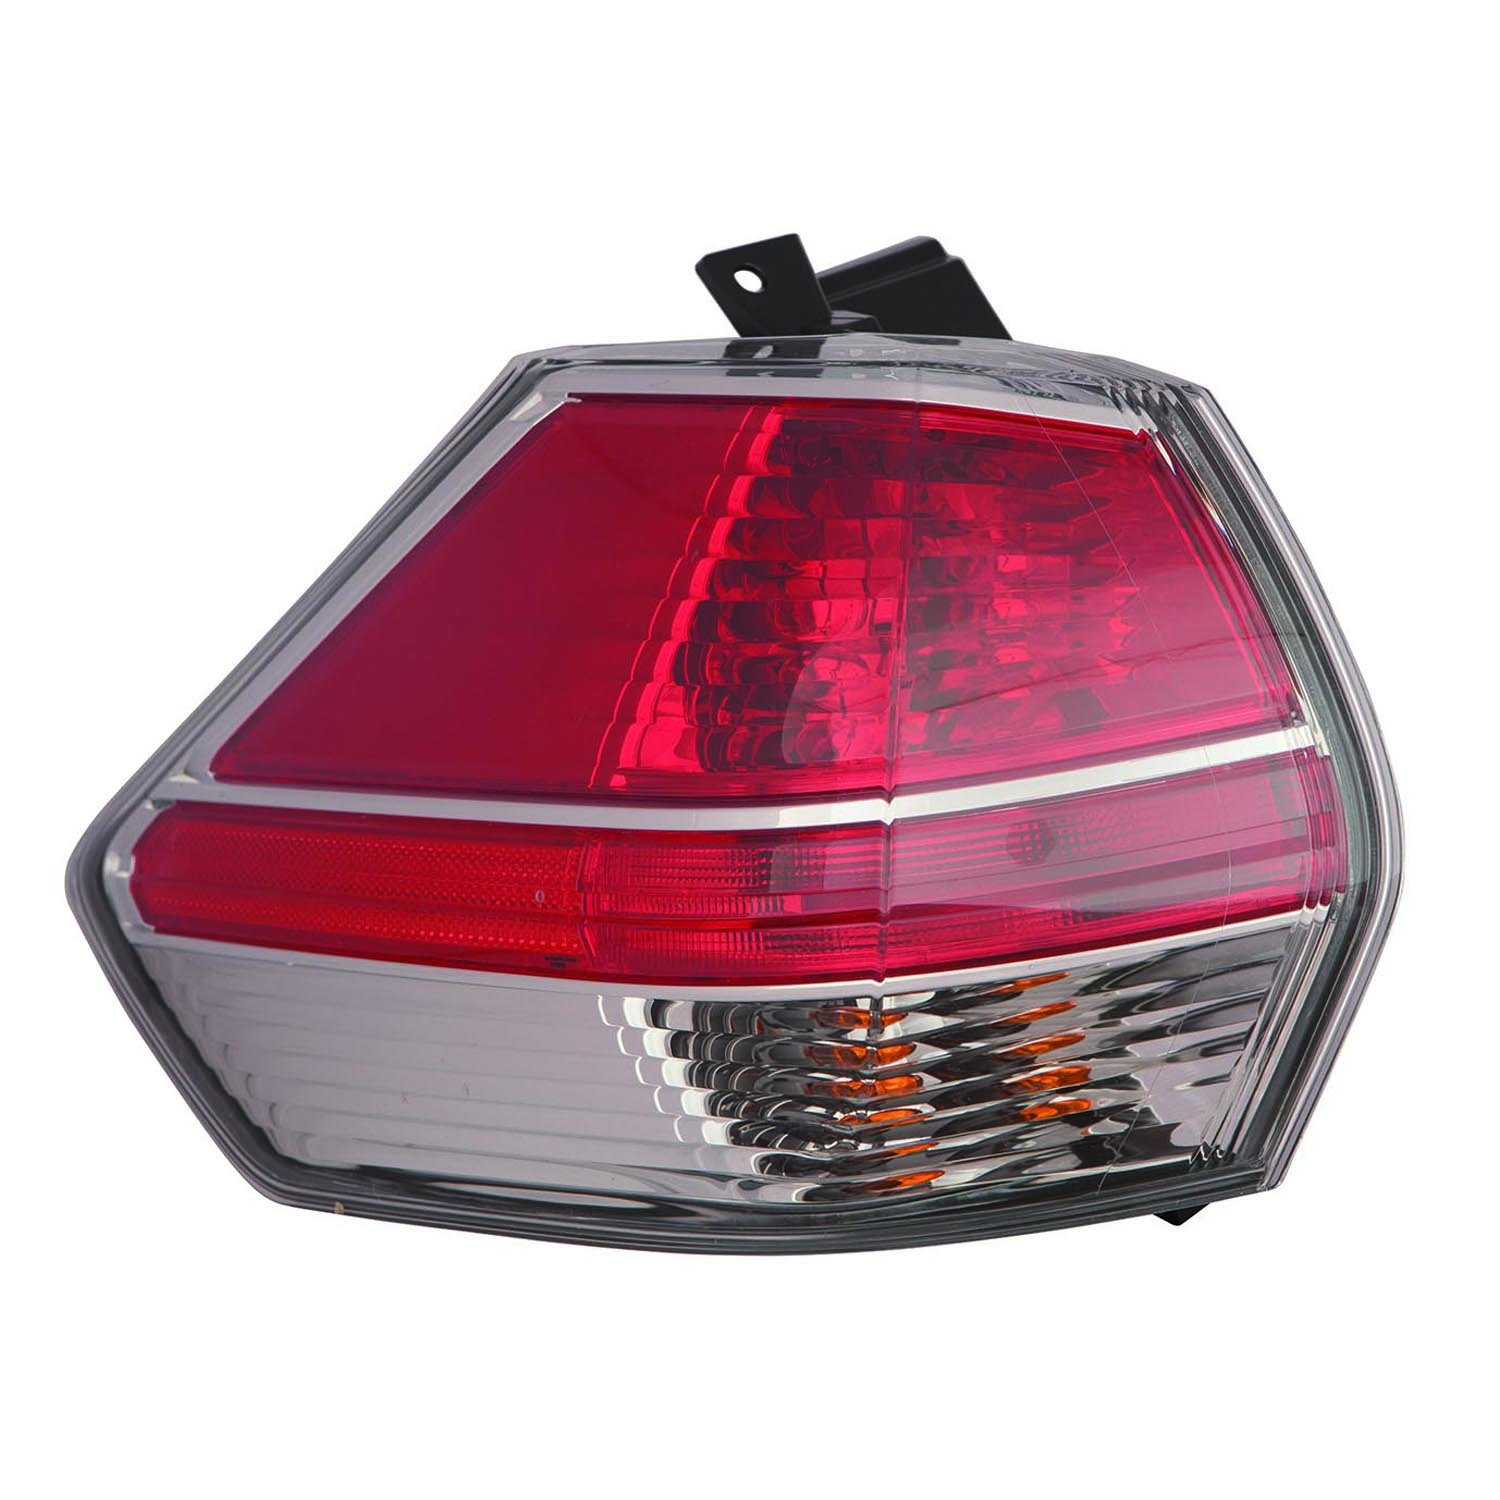 OE Replacement Tail Light LEXUS ES350 2007-2009 Multiple Manufacturers LX2805101N Partslink LX2805101